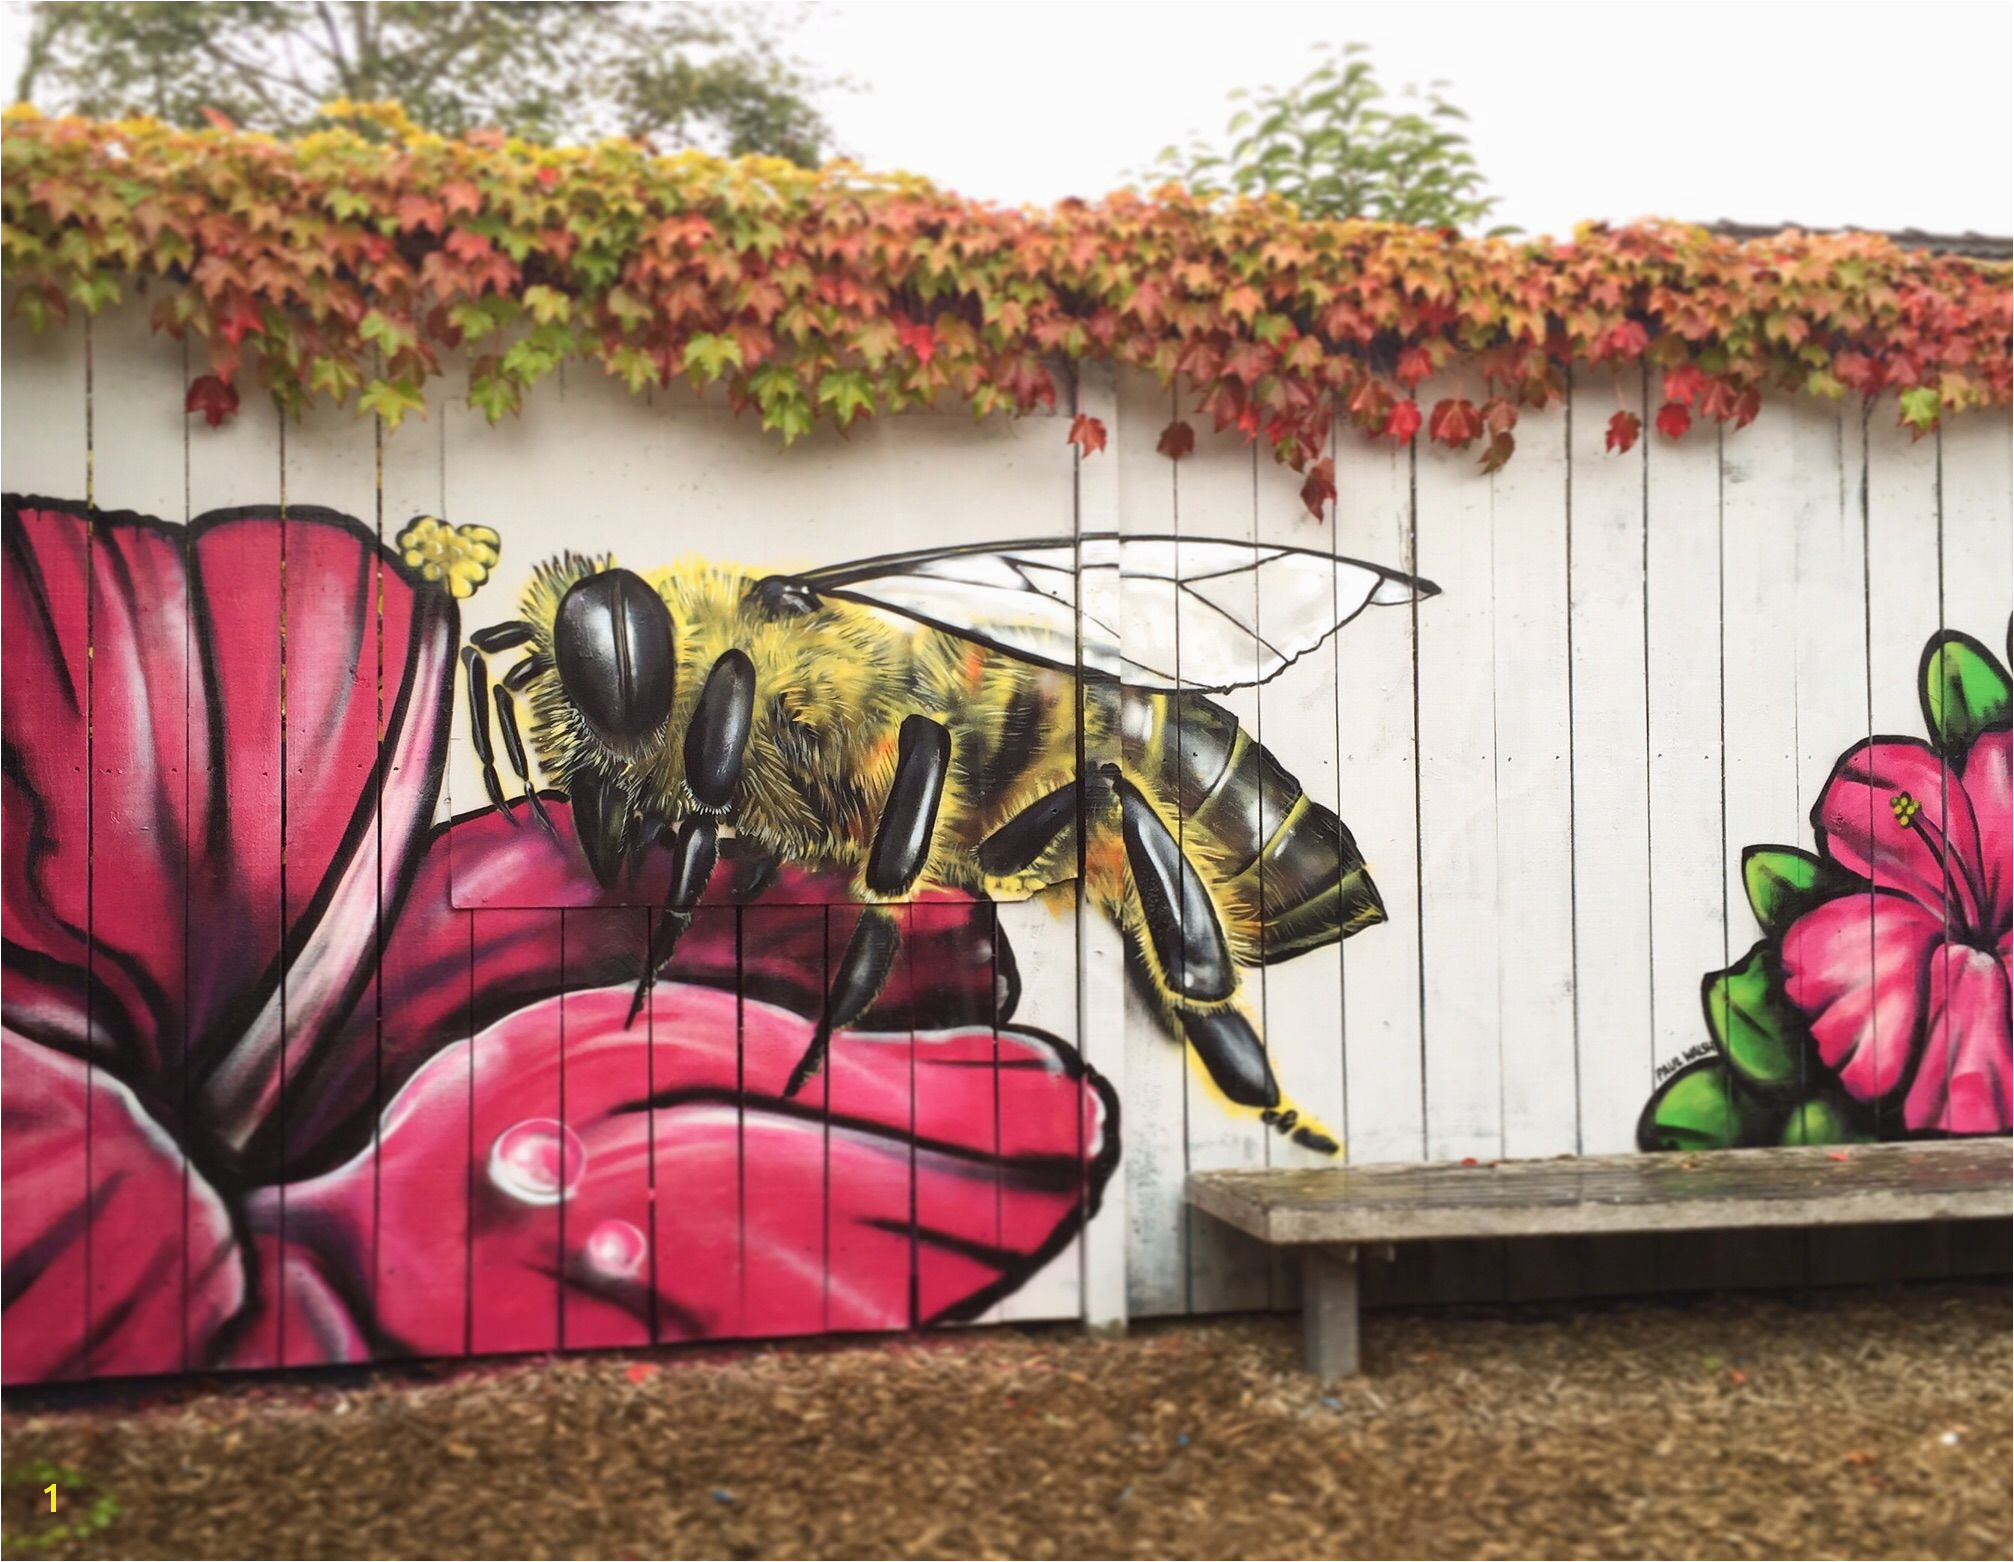 Painting Murals On Outside Walls I Spent My Sunday Morning Painting A Bee On the Fence Of A Local